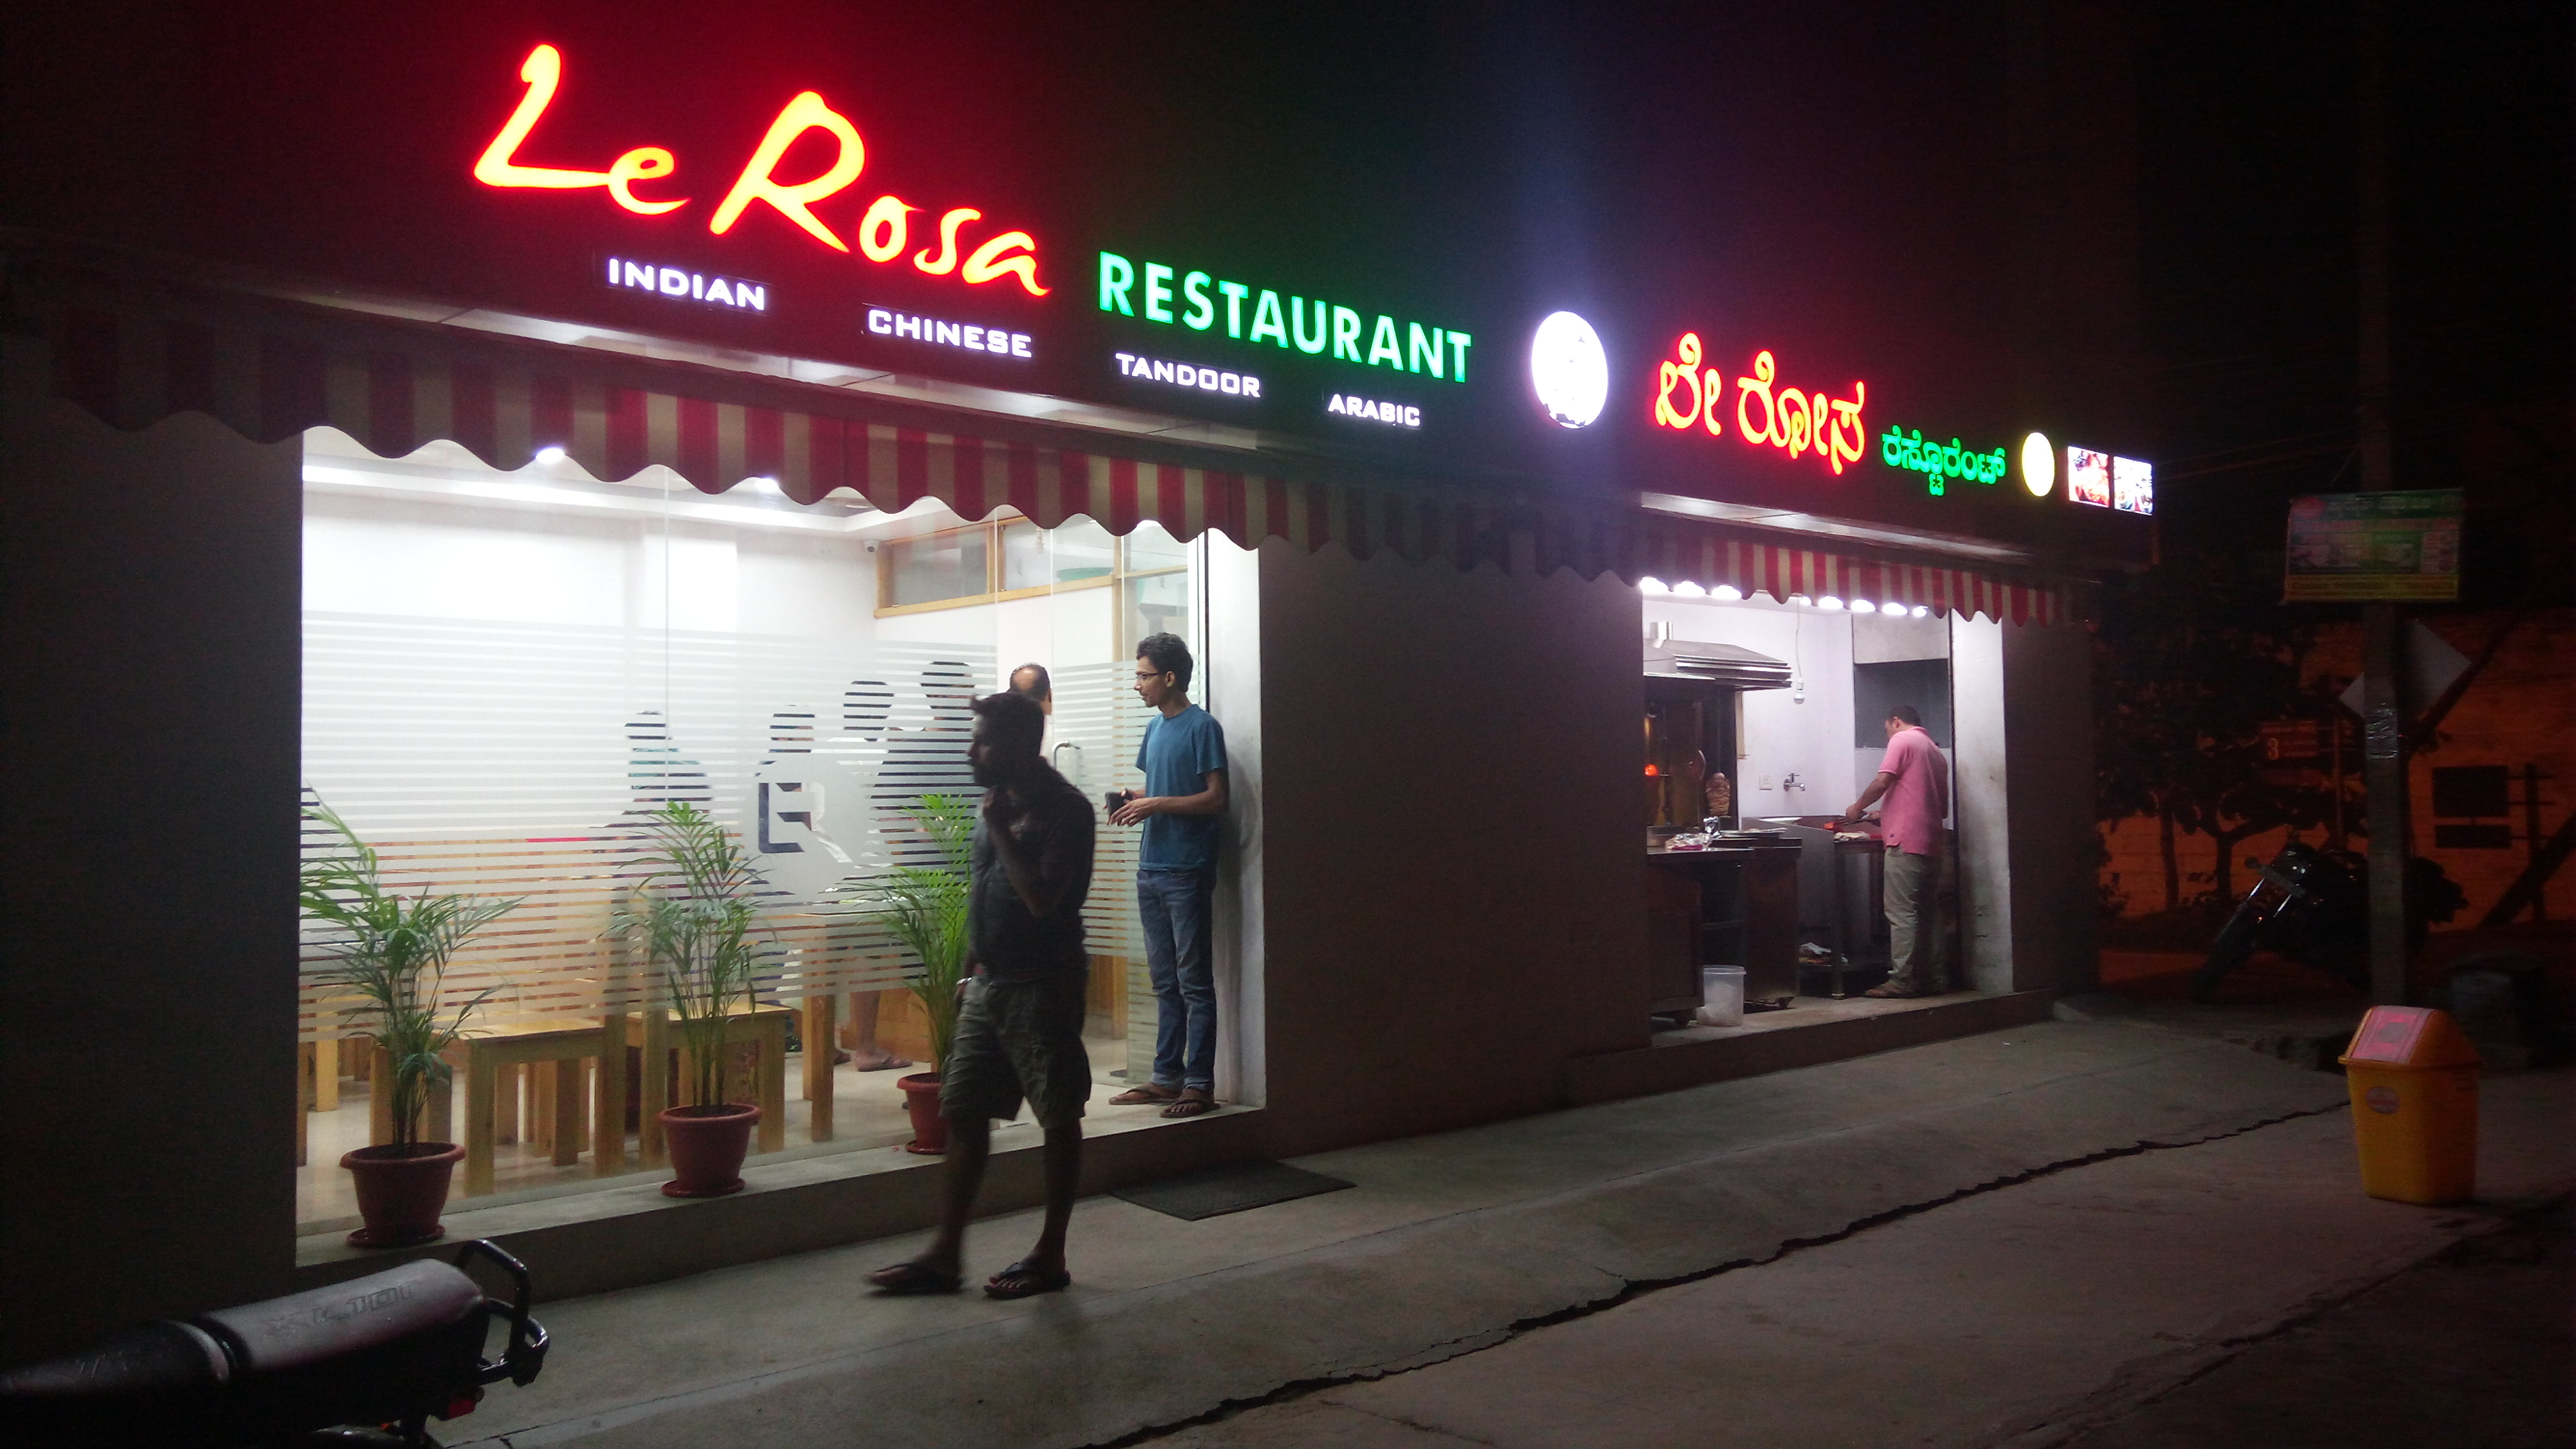 File:Le Rosa Restaurant, 15 the cross, 6th sector, HSR layout